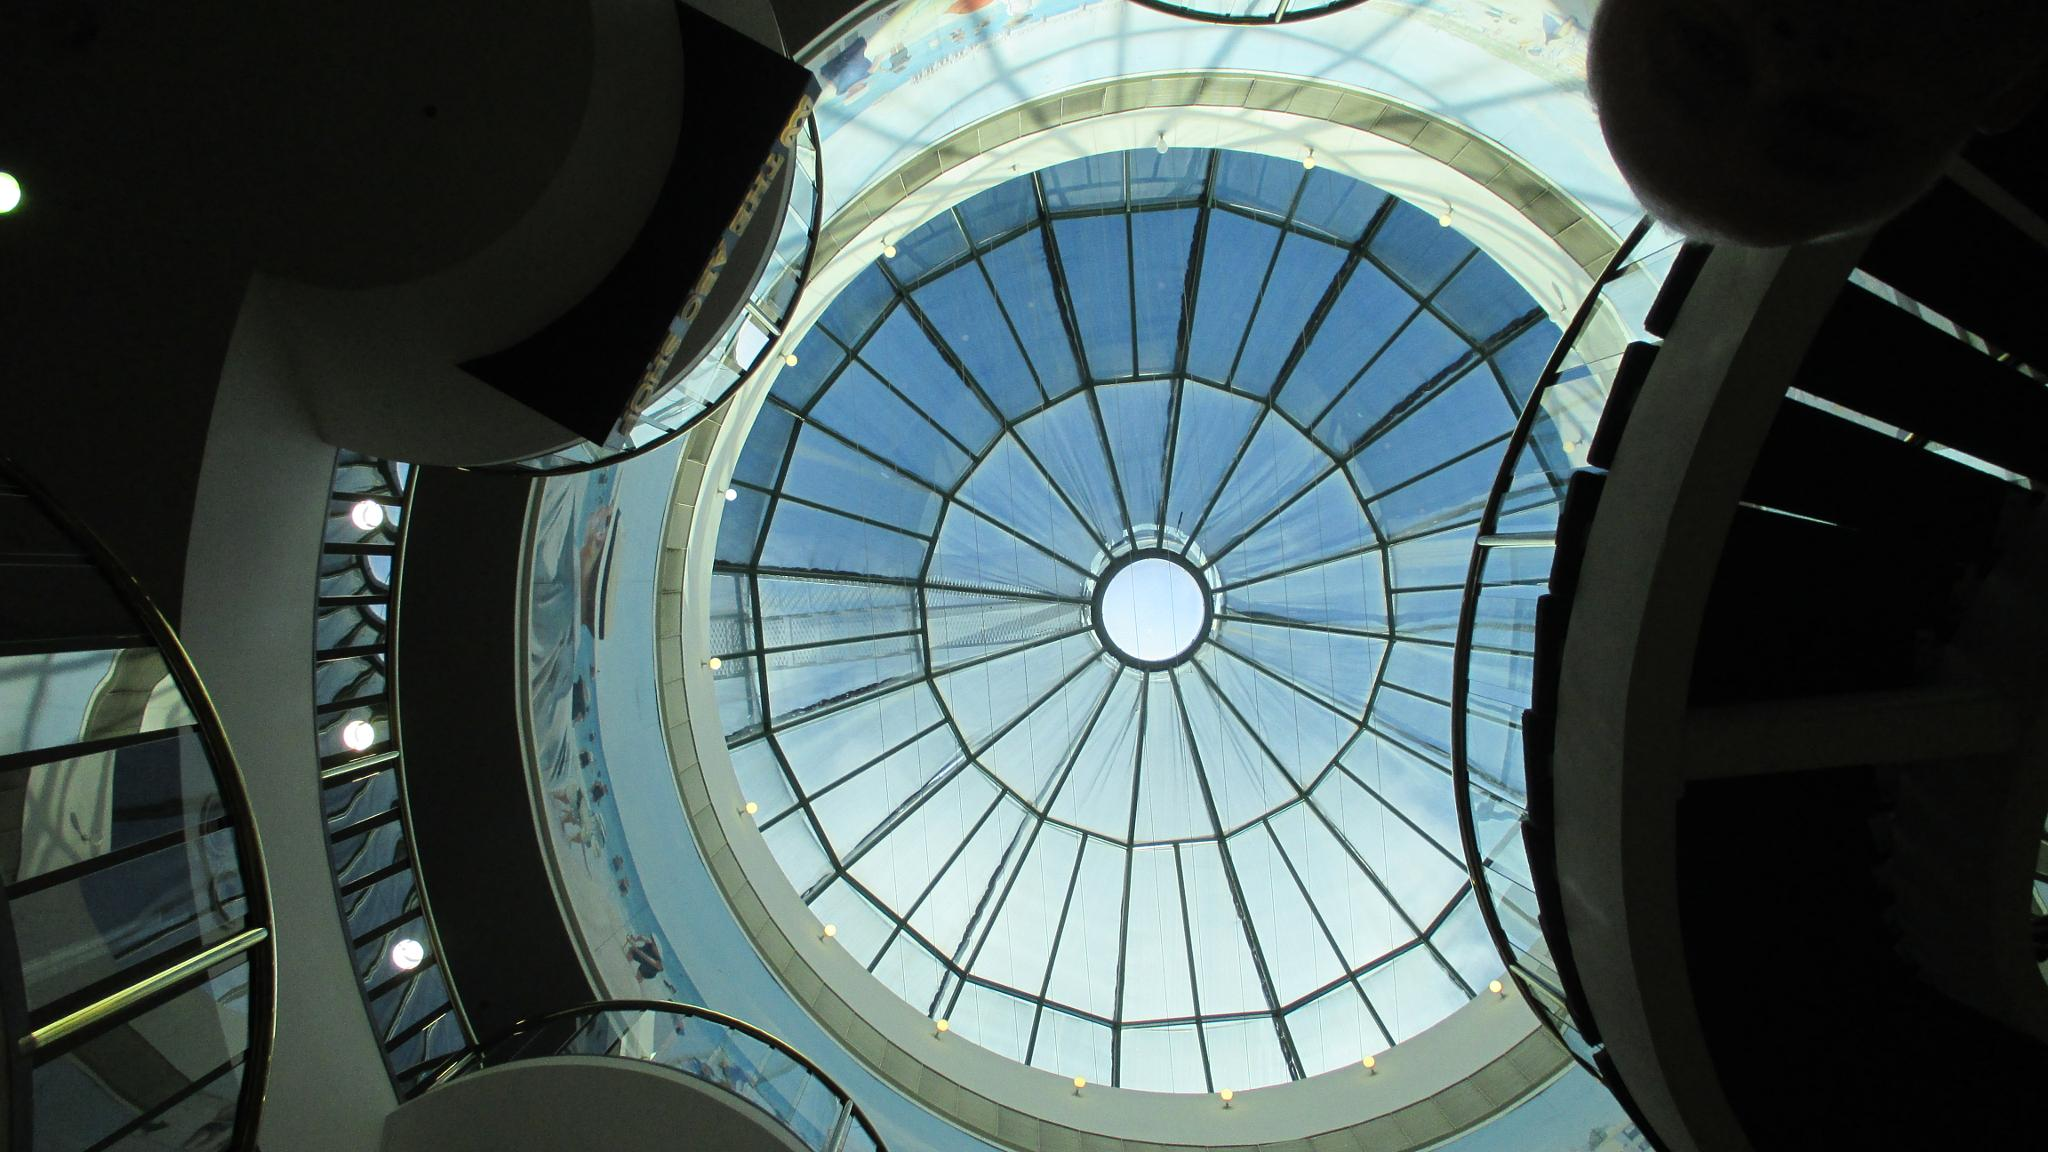 Looking up. by mark.eatwell.3